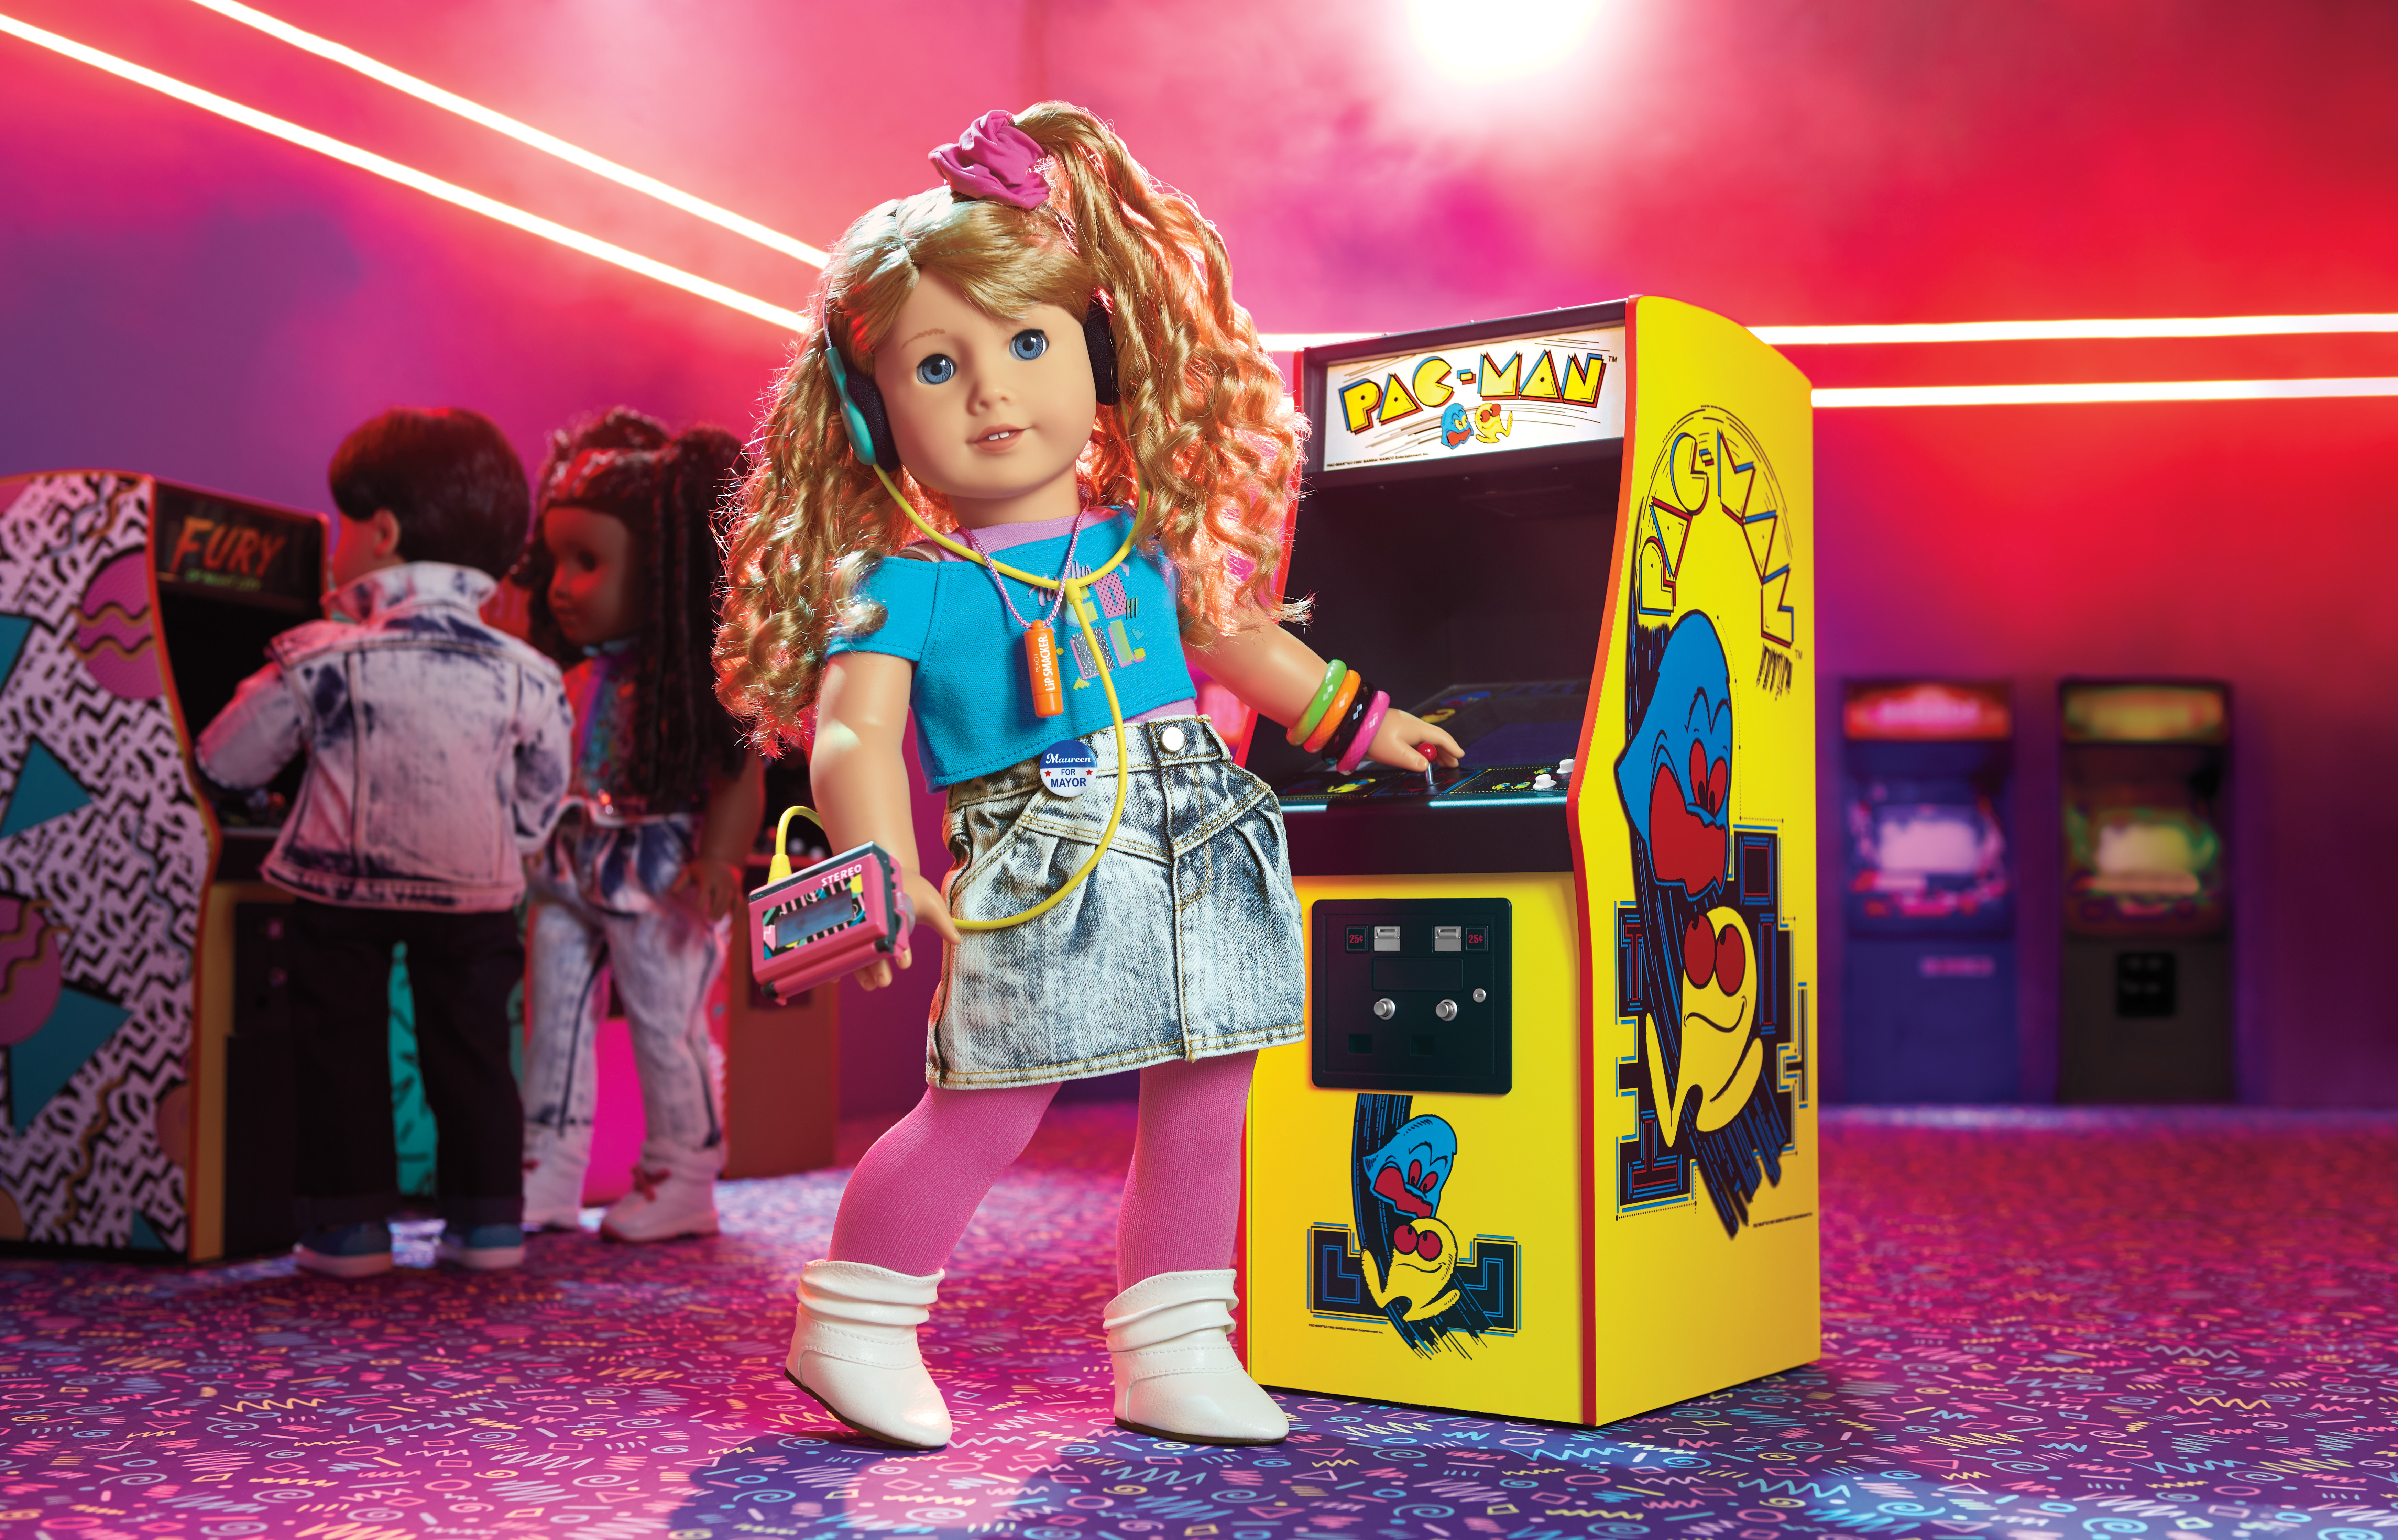 Doll dressed in an 80s outfit standing in the middle of a video arcade scene.